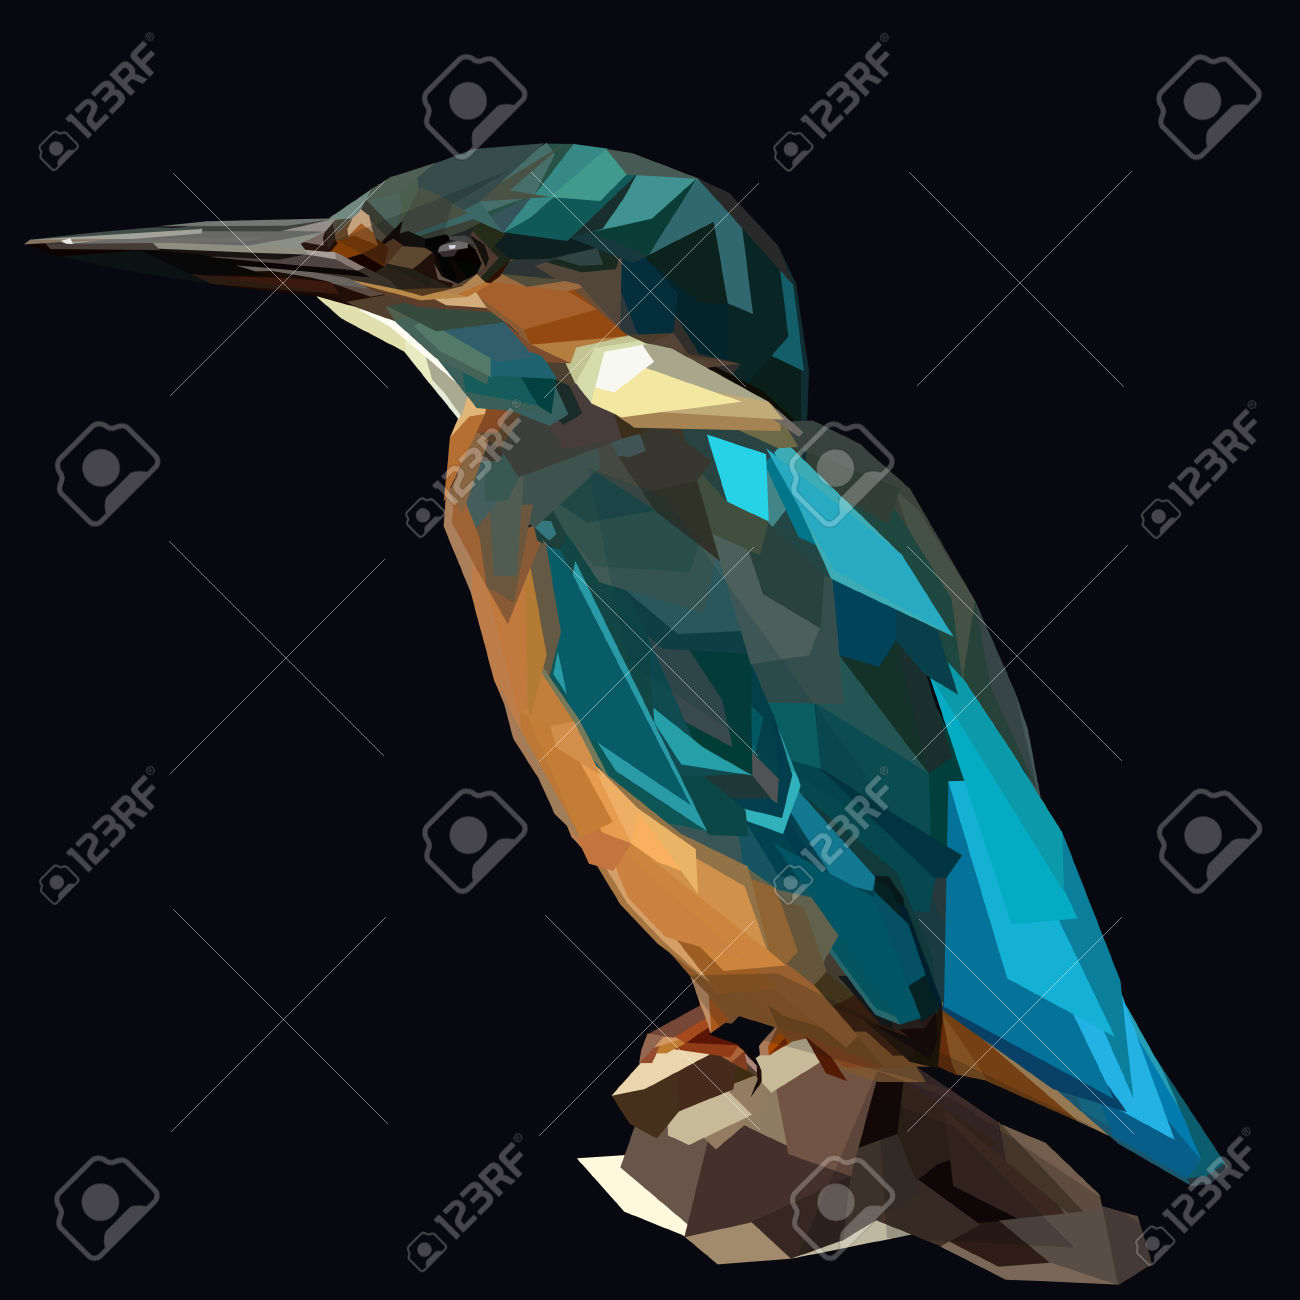 Small Blue Kingfisher Bird On Dark Background Royalty Free.